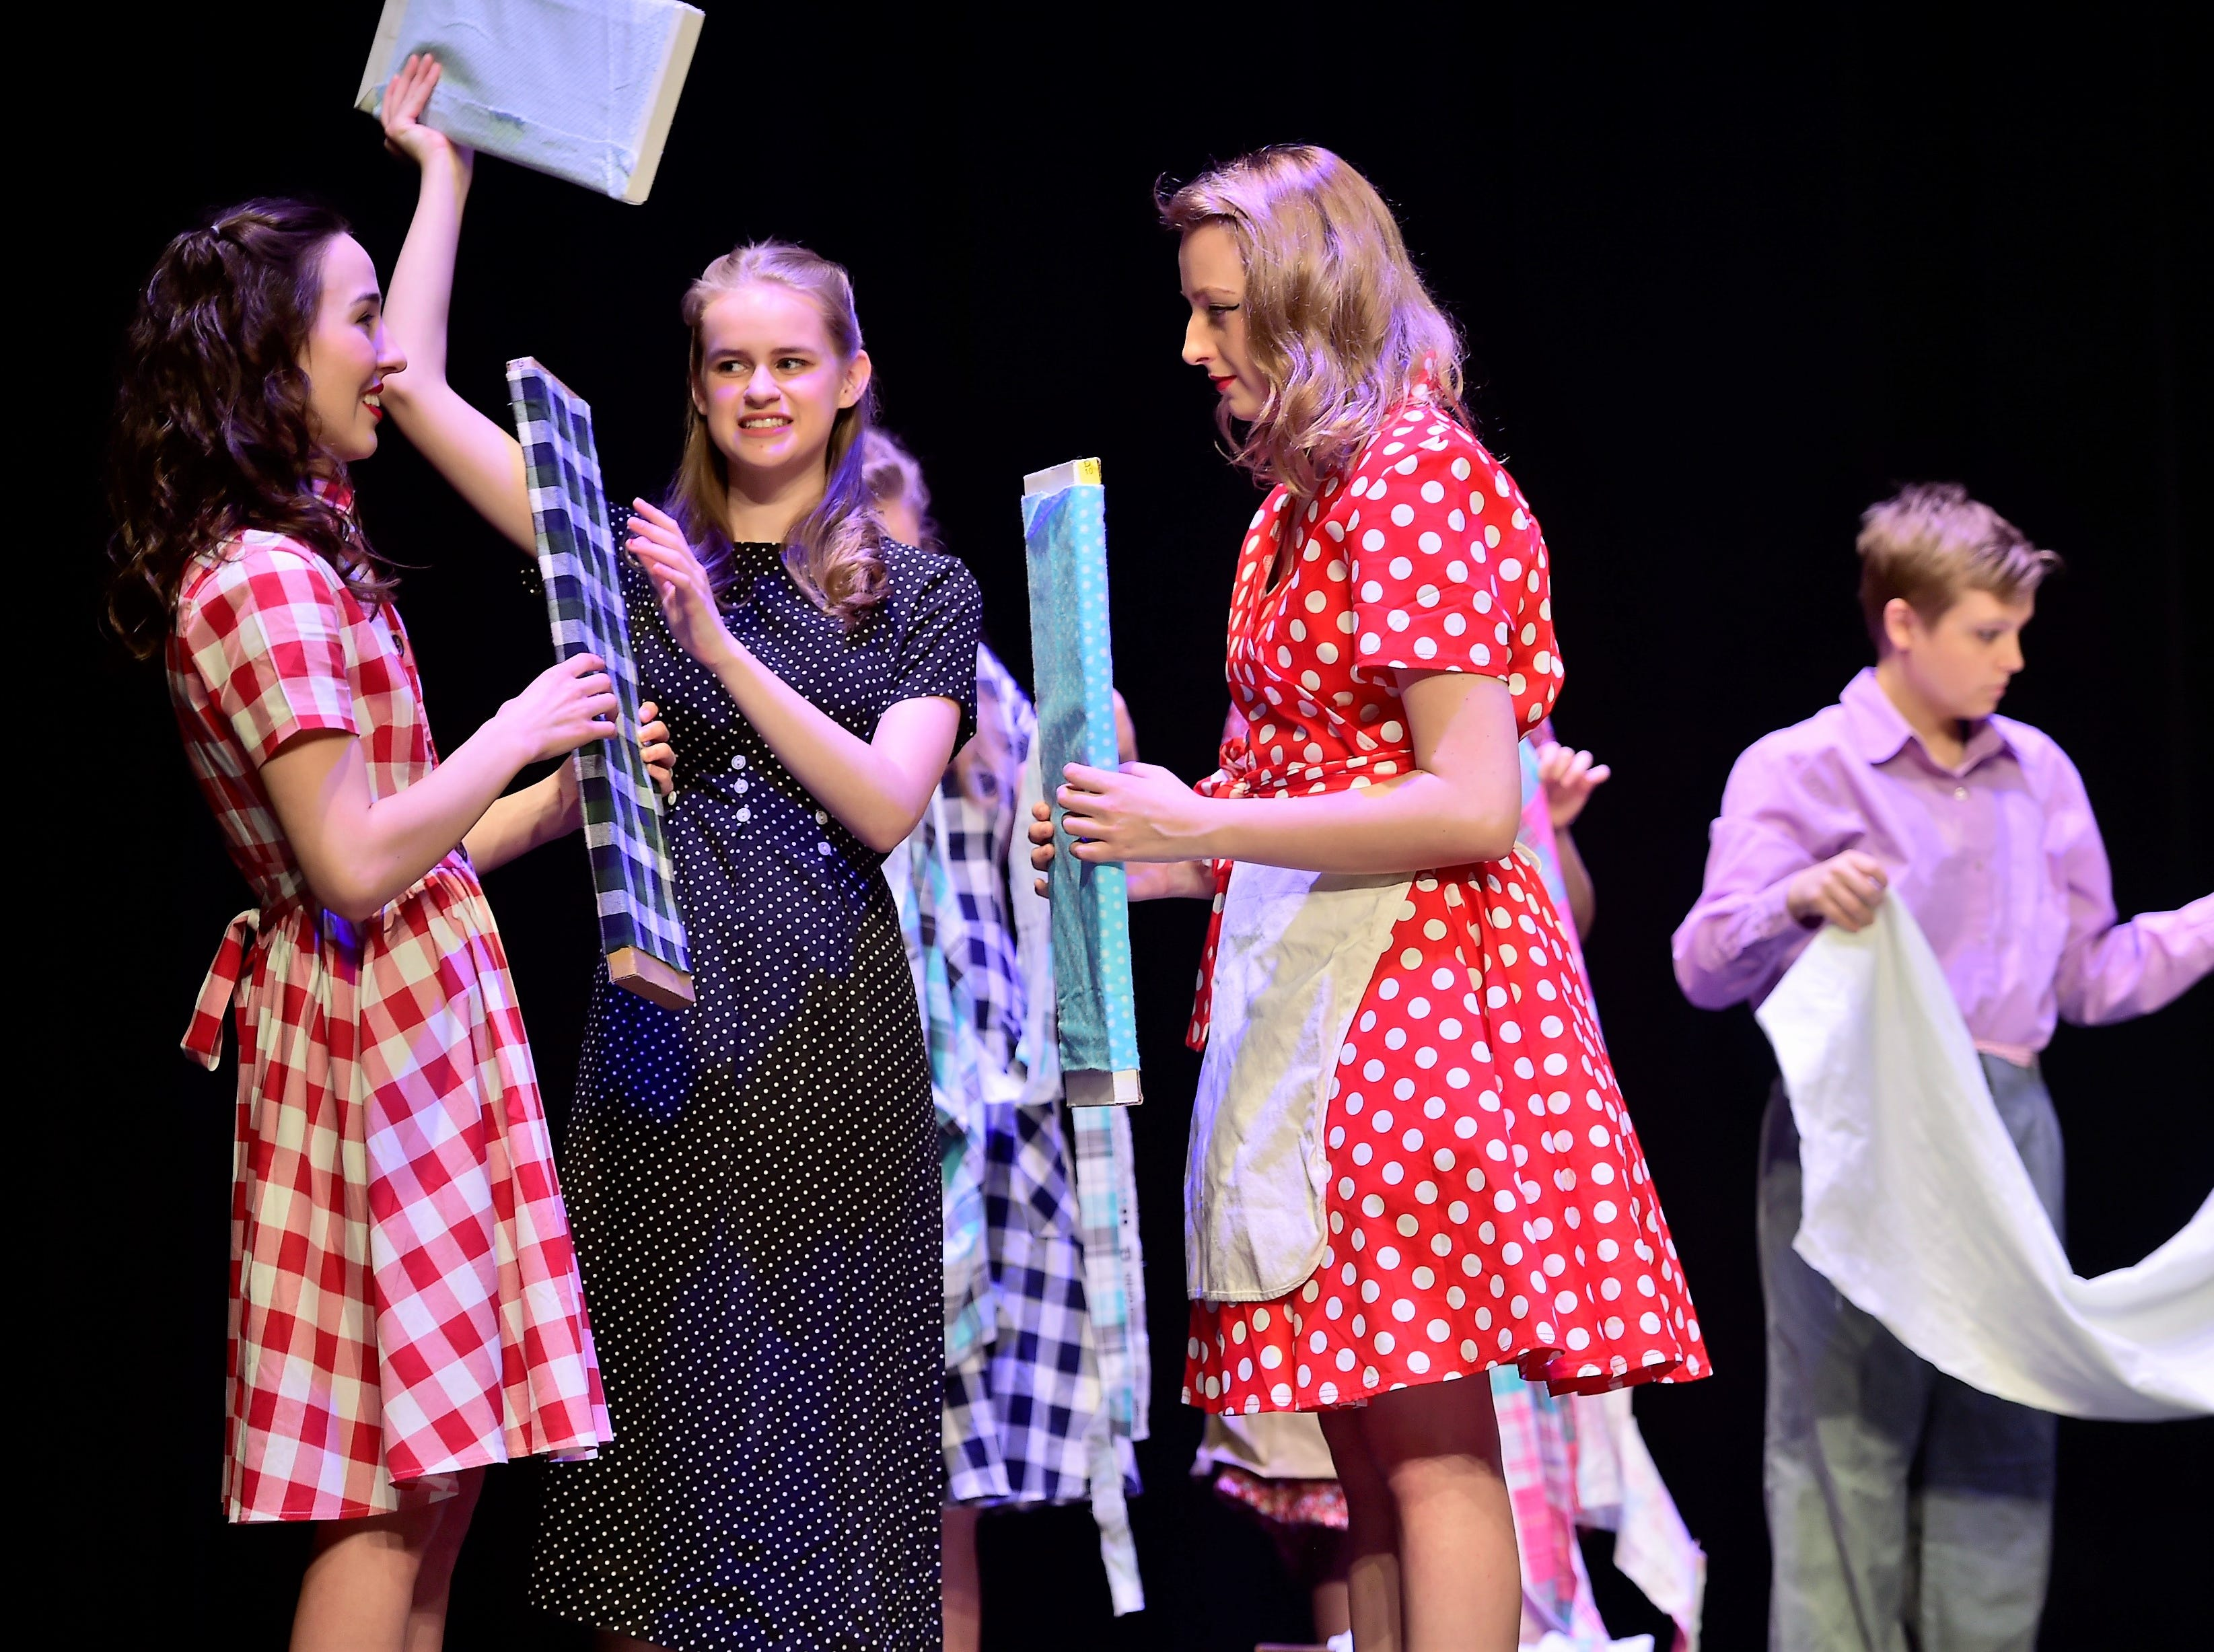 """Teens portraying pajama factory workers rehearse a scene  from """"The Pajama Game,"""" on Sunday, March 10, 2019, at Waynesboro Area Senior High School. The musical, based on the 1953 novel, """"7 1/2 Cents"""" by Richard Bissell, tells the story of a pajama factory where workers are fighting for a raise of 7 1/2 cents. Showtimes for Waynesboro Area School District's All-School Production of """"The Pajama Game"""" are 7 p.m. Friday and Saturday, March 15 and 16, and 2 p.m. Sunday, March 17 in the high school auditorium. For choose-your-seat tickets, $10 for adults and $6 for children under 12, go to https://washsmusic.ticketleap.com/the-pajama-game/. General admission tickets will also be sold at the door."""